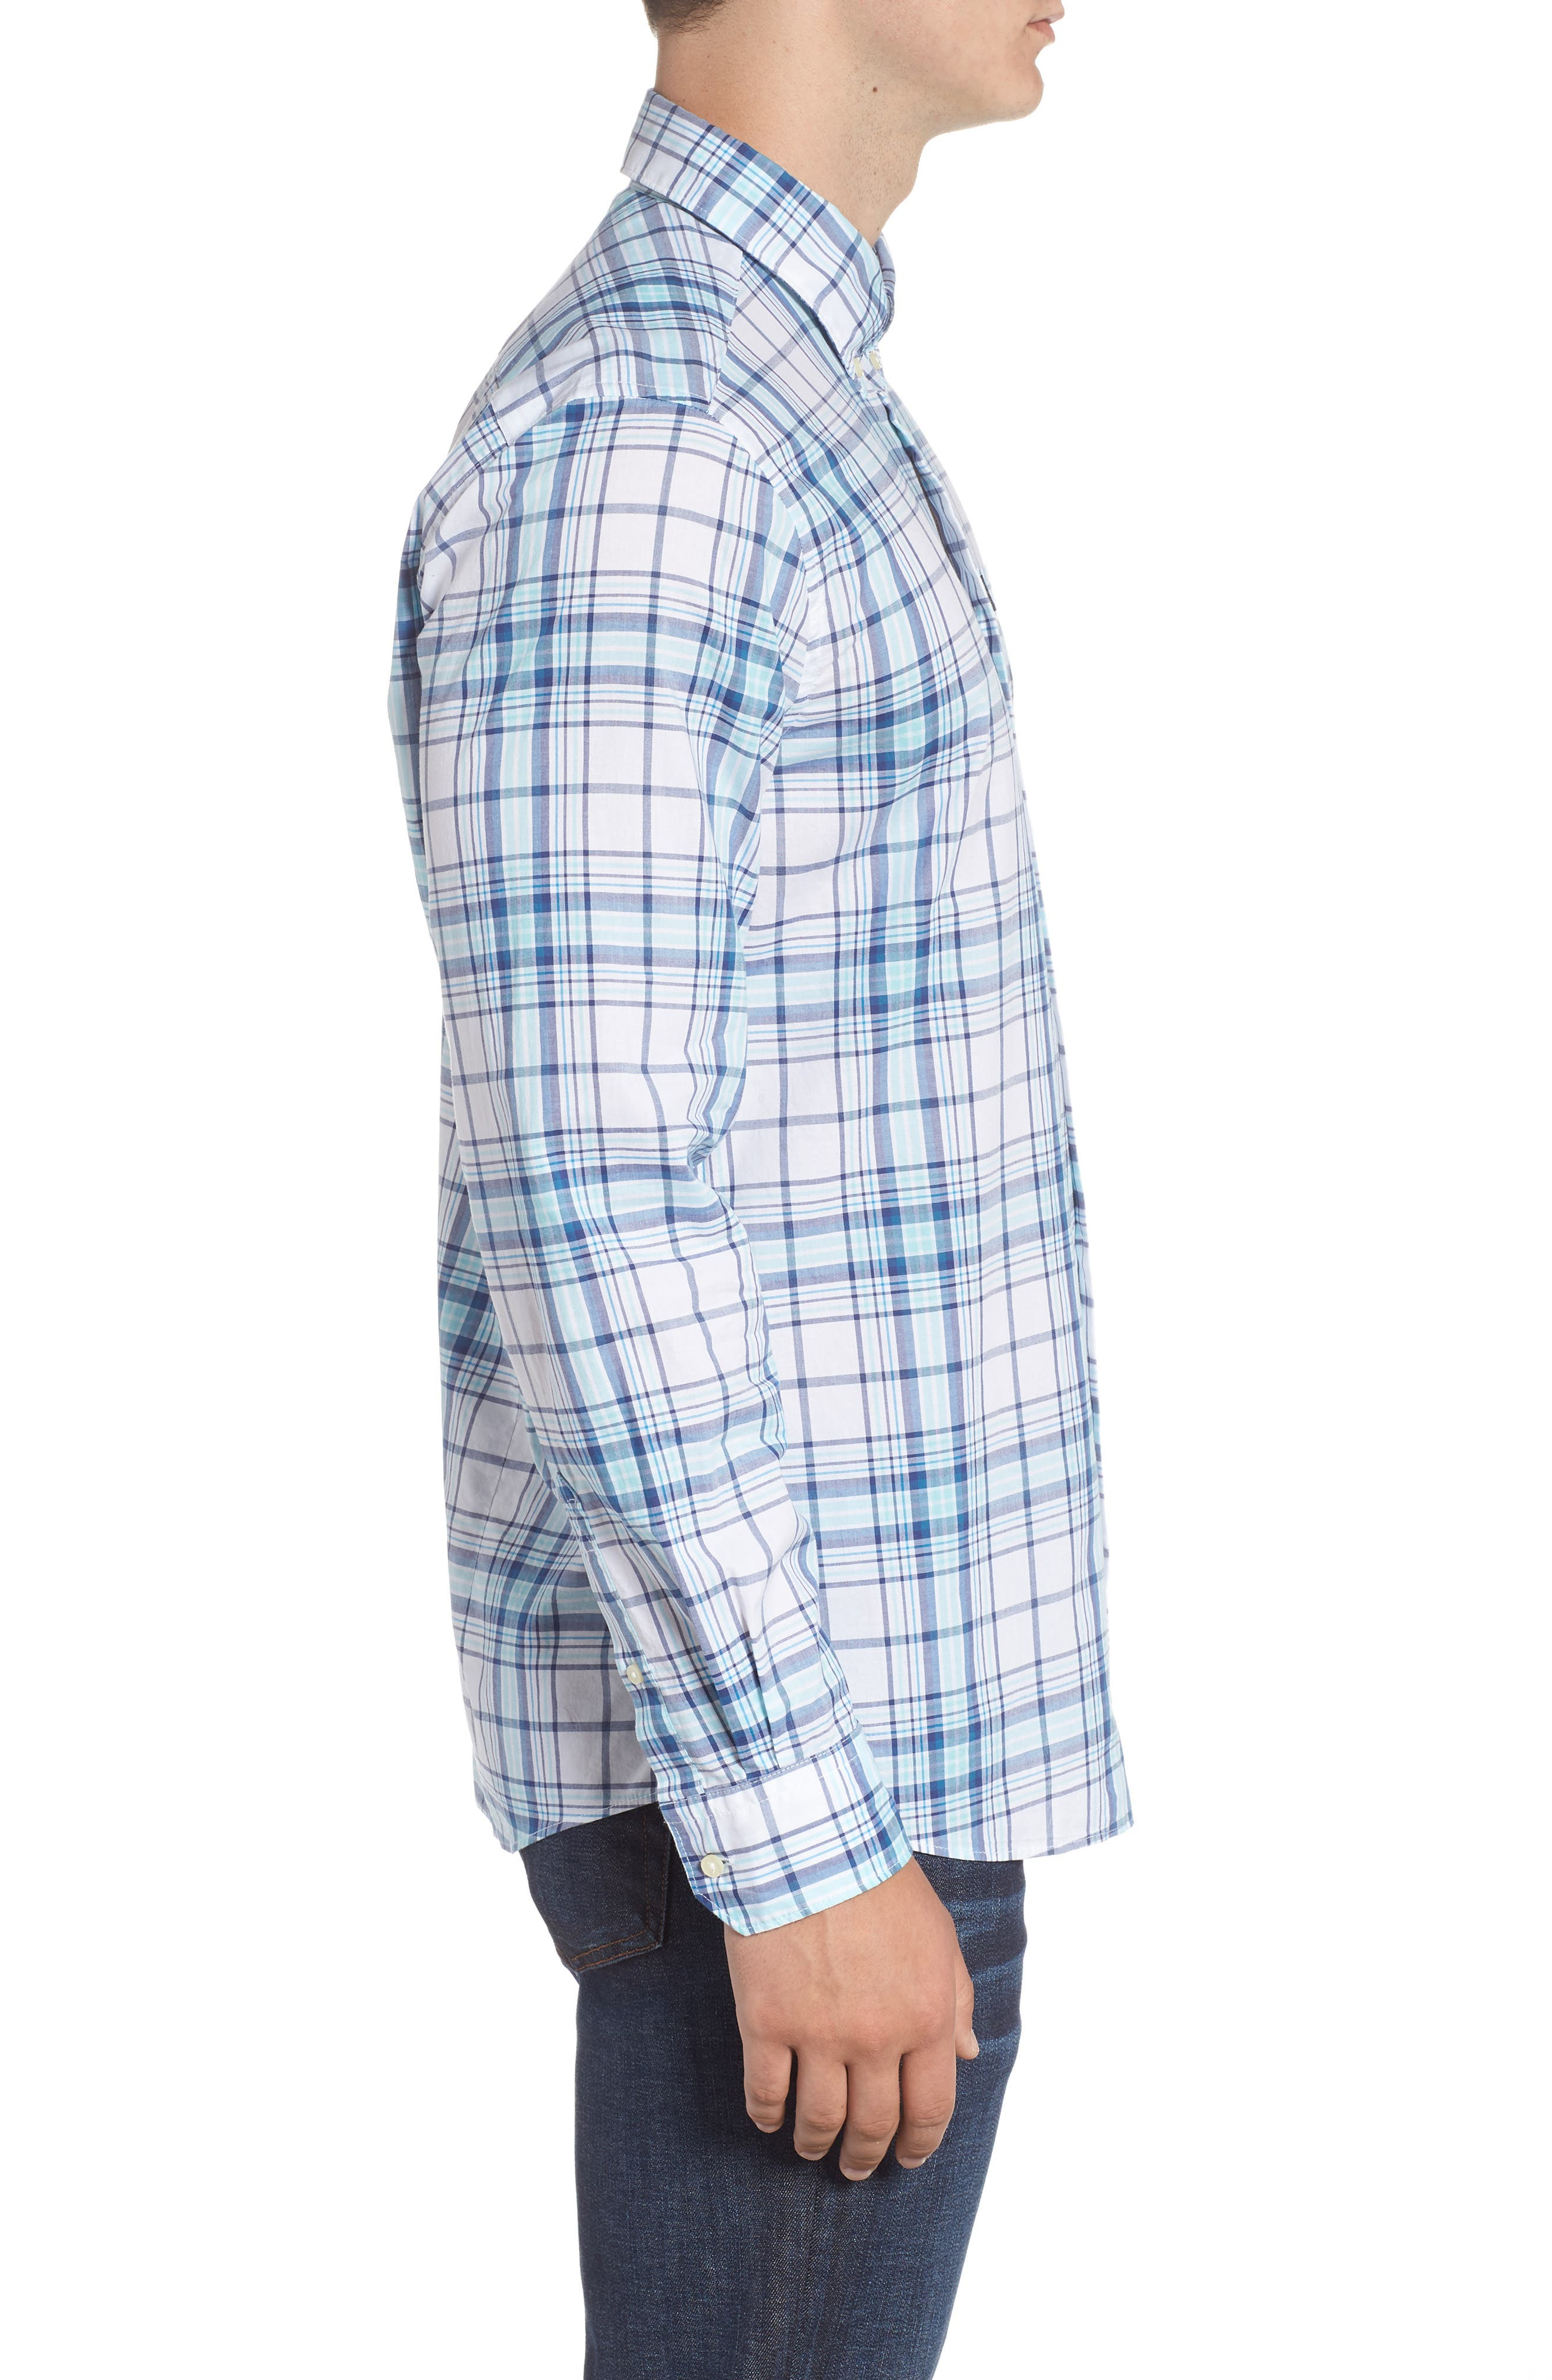 Christopher Tailored Fit Plaid Sport Shirt,                             Alternate thumbnail 4, color,                             440